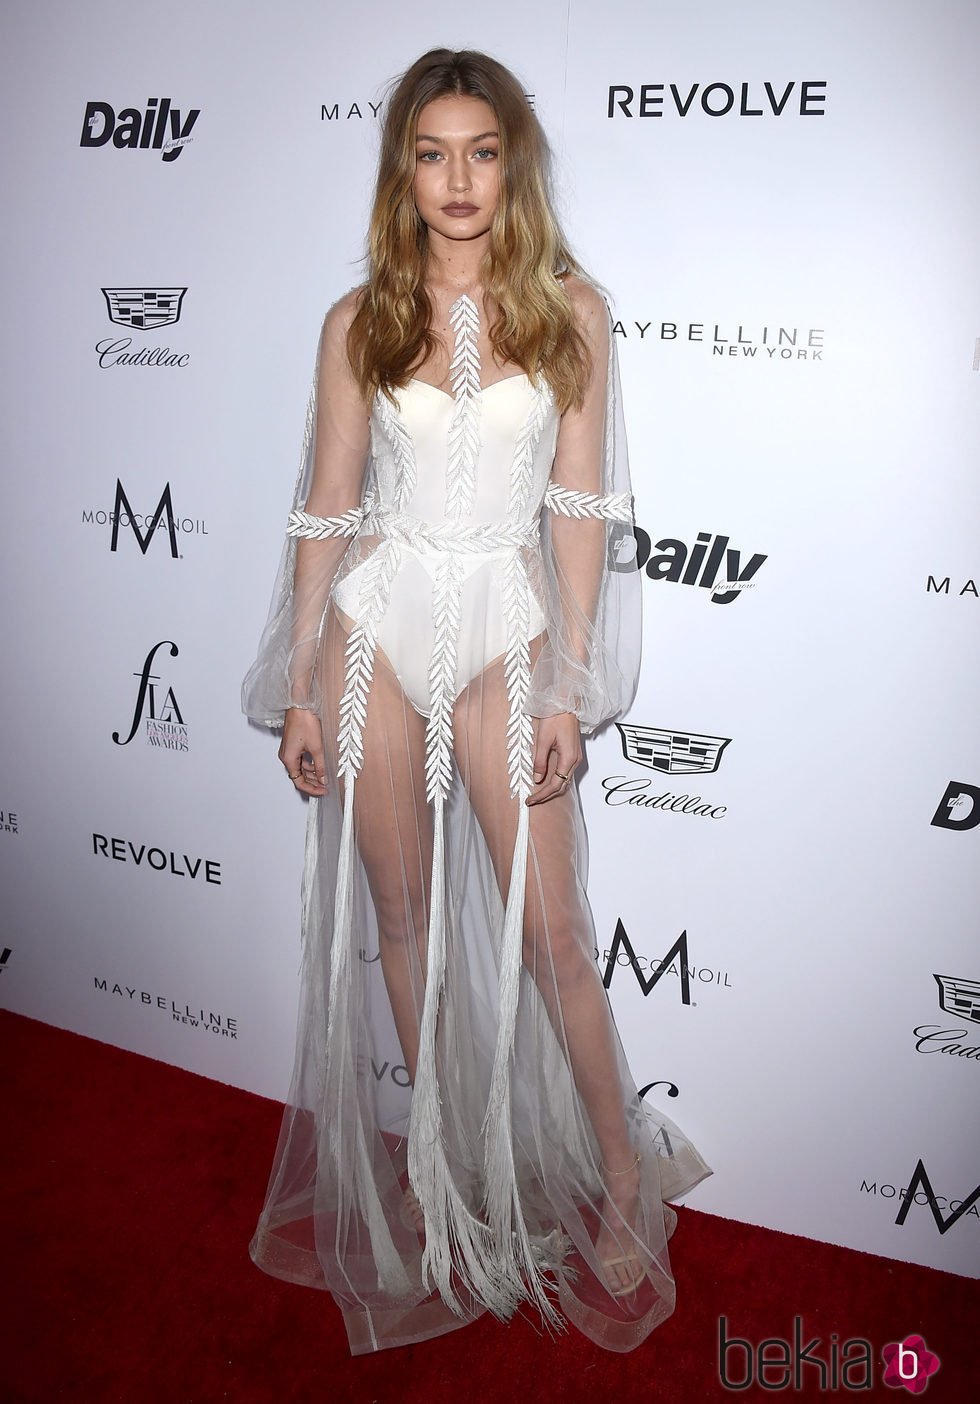 Gigi Hadid en los Fashion Awards 2016 en Los Ángeles